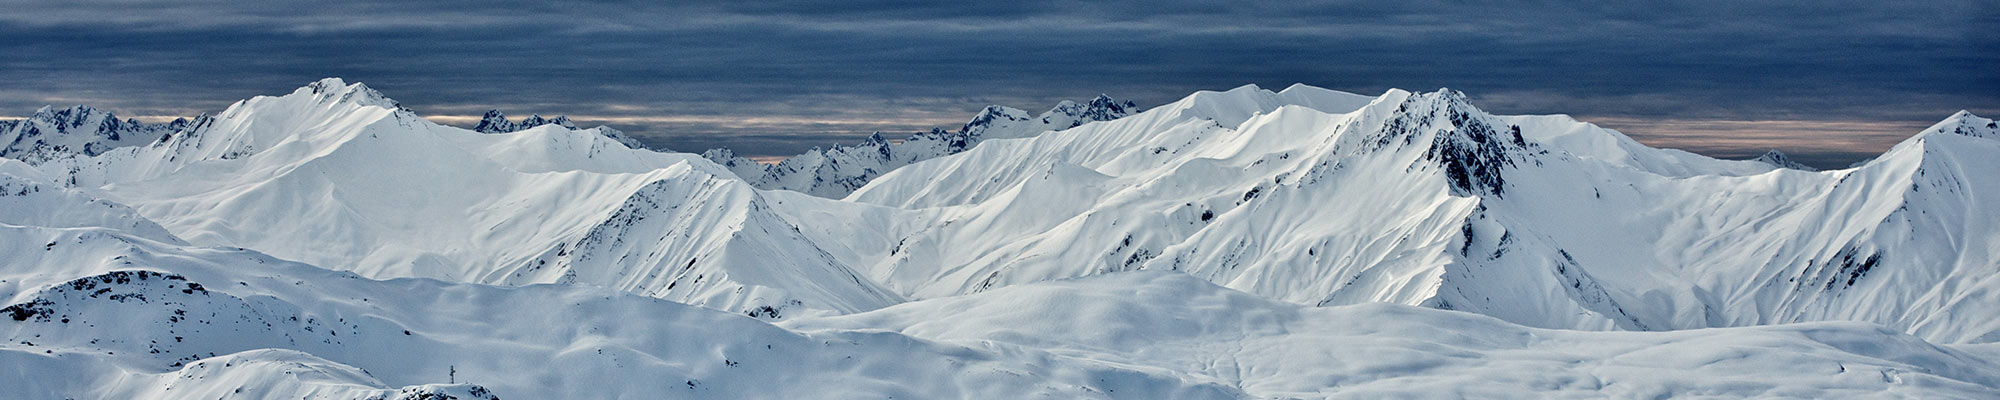 Avalanche, Ski, Alpine, and Polar Instruments for Cold Region Monitoring and Research